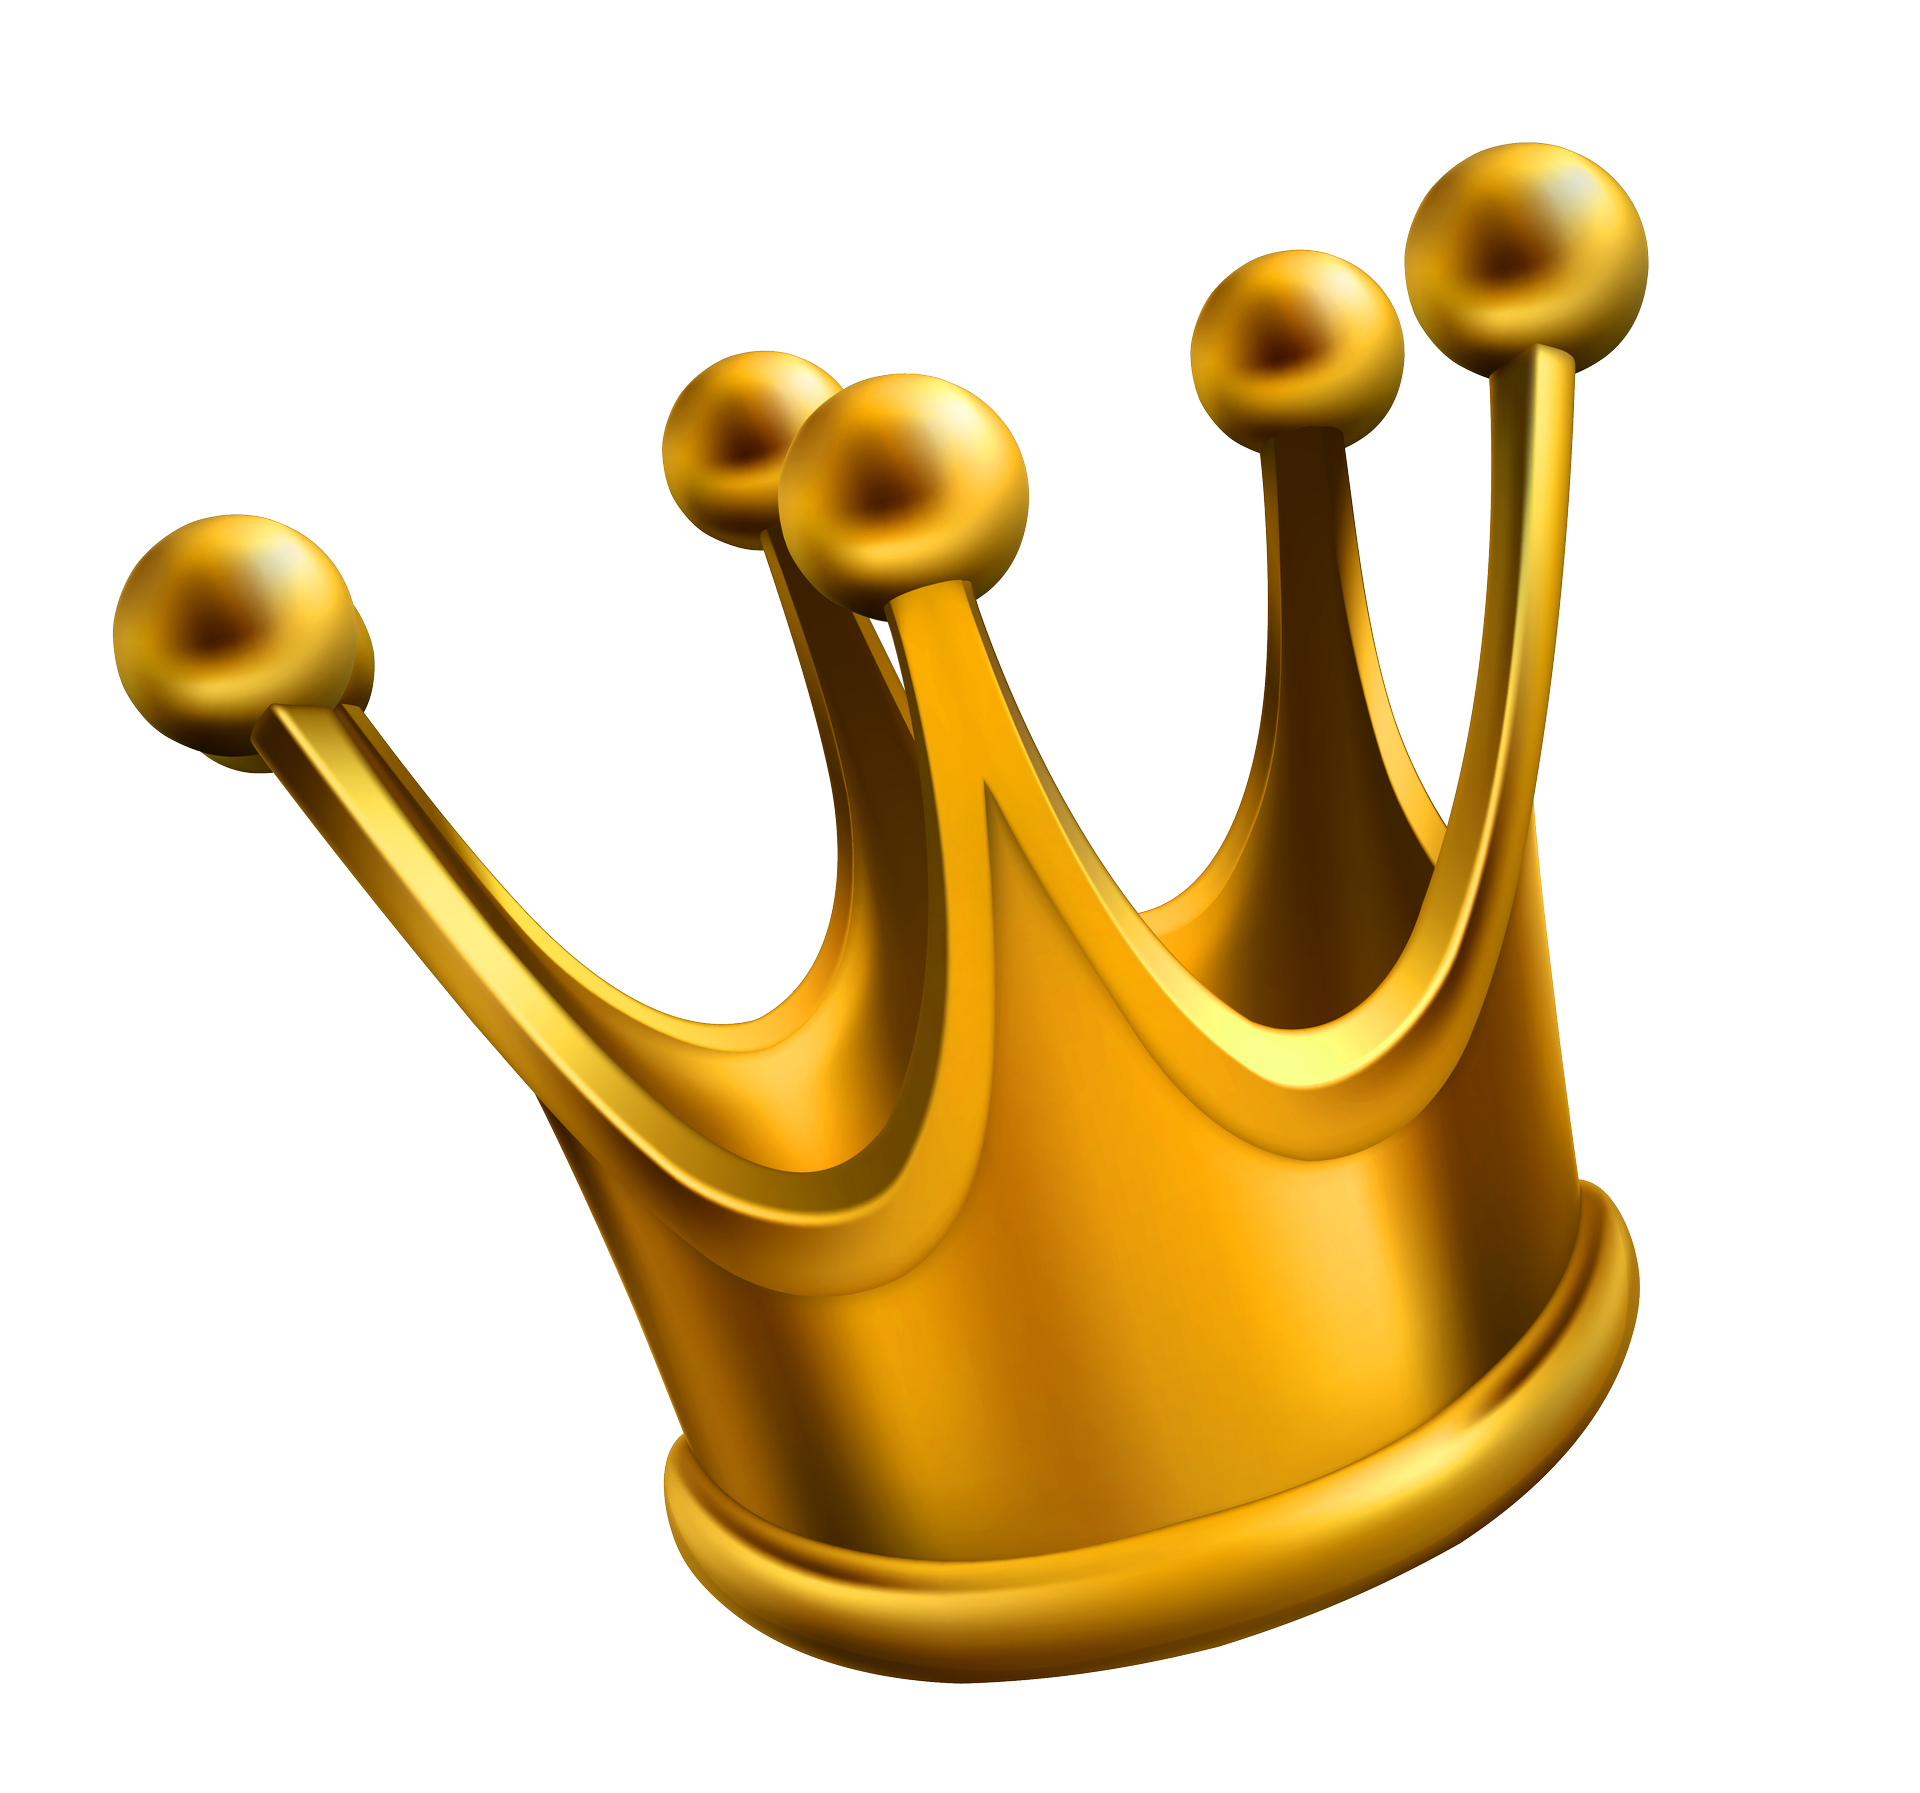 Sparkling gold crown clipart svg royalty free download Crown Clipart at GetDrawings.com | Free for personal use Crown ... svg royalty free download